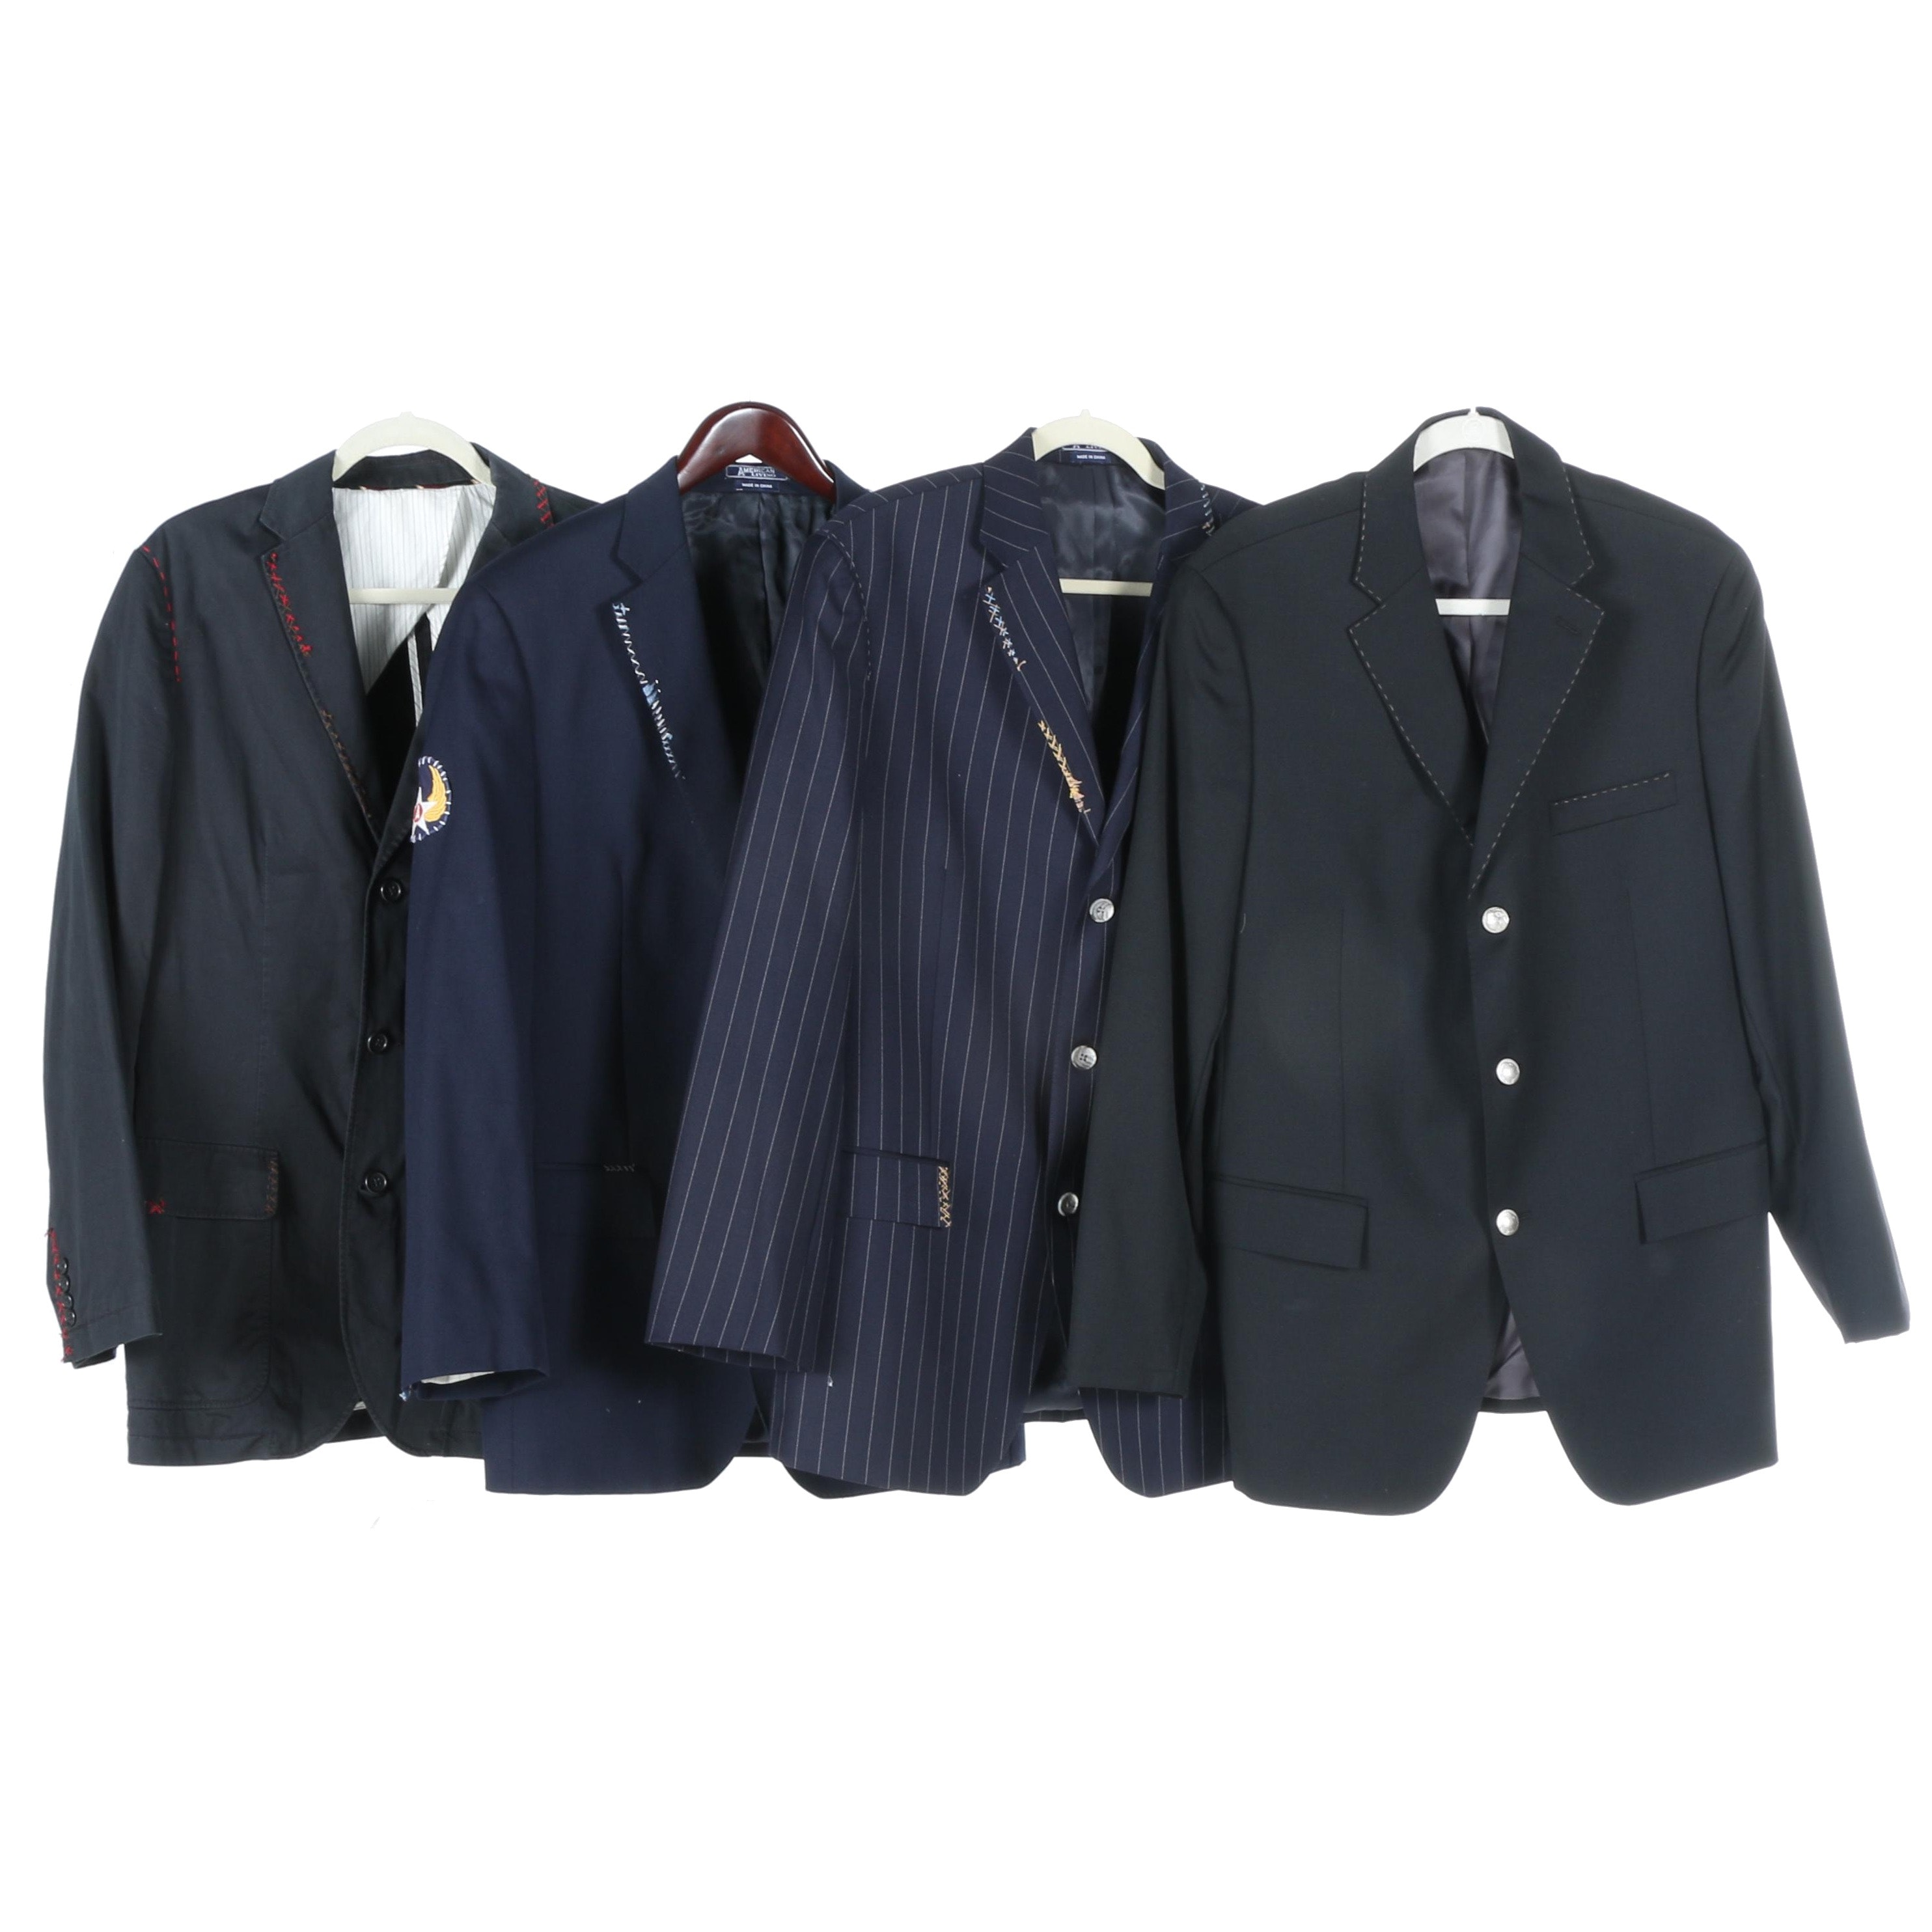 American Living Blue and Pinstripe Jackets